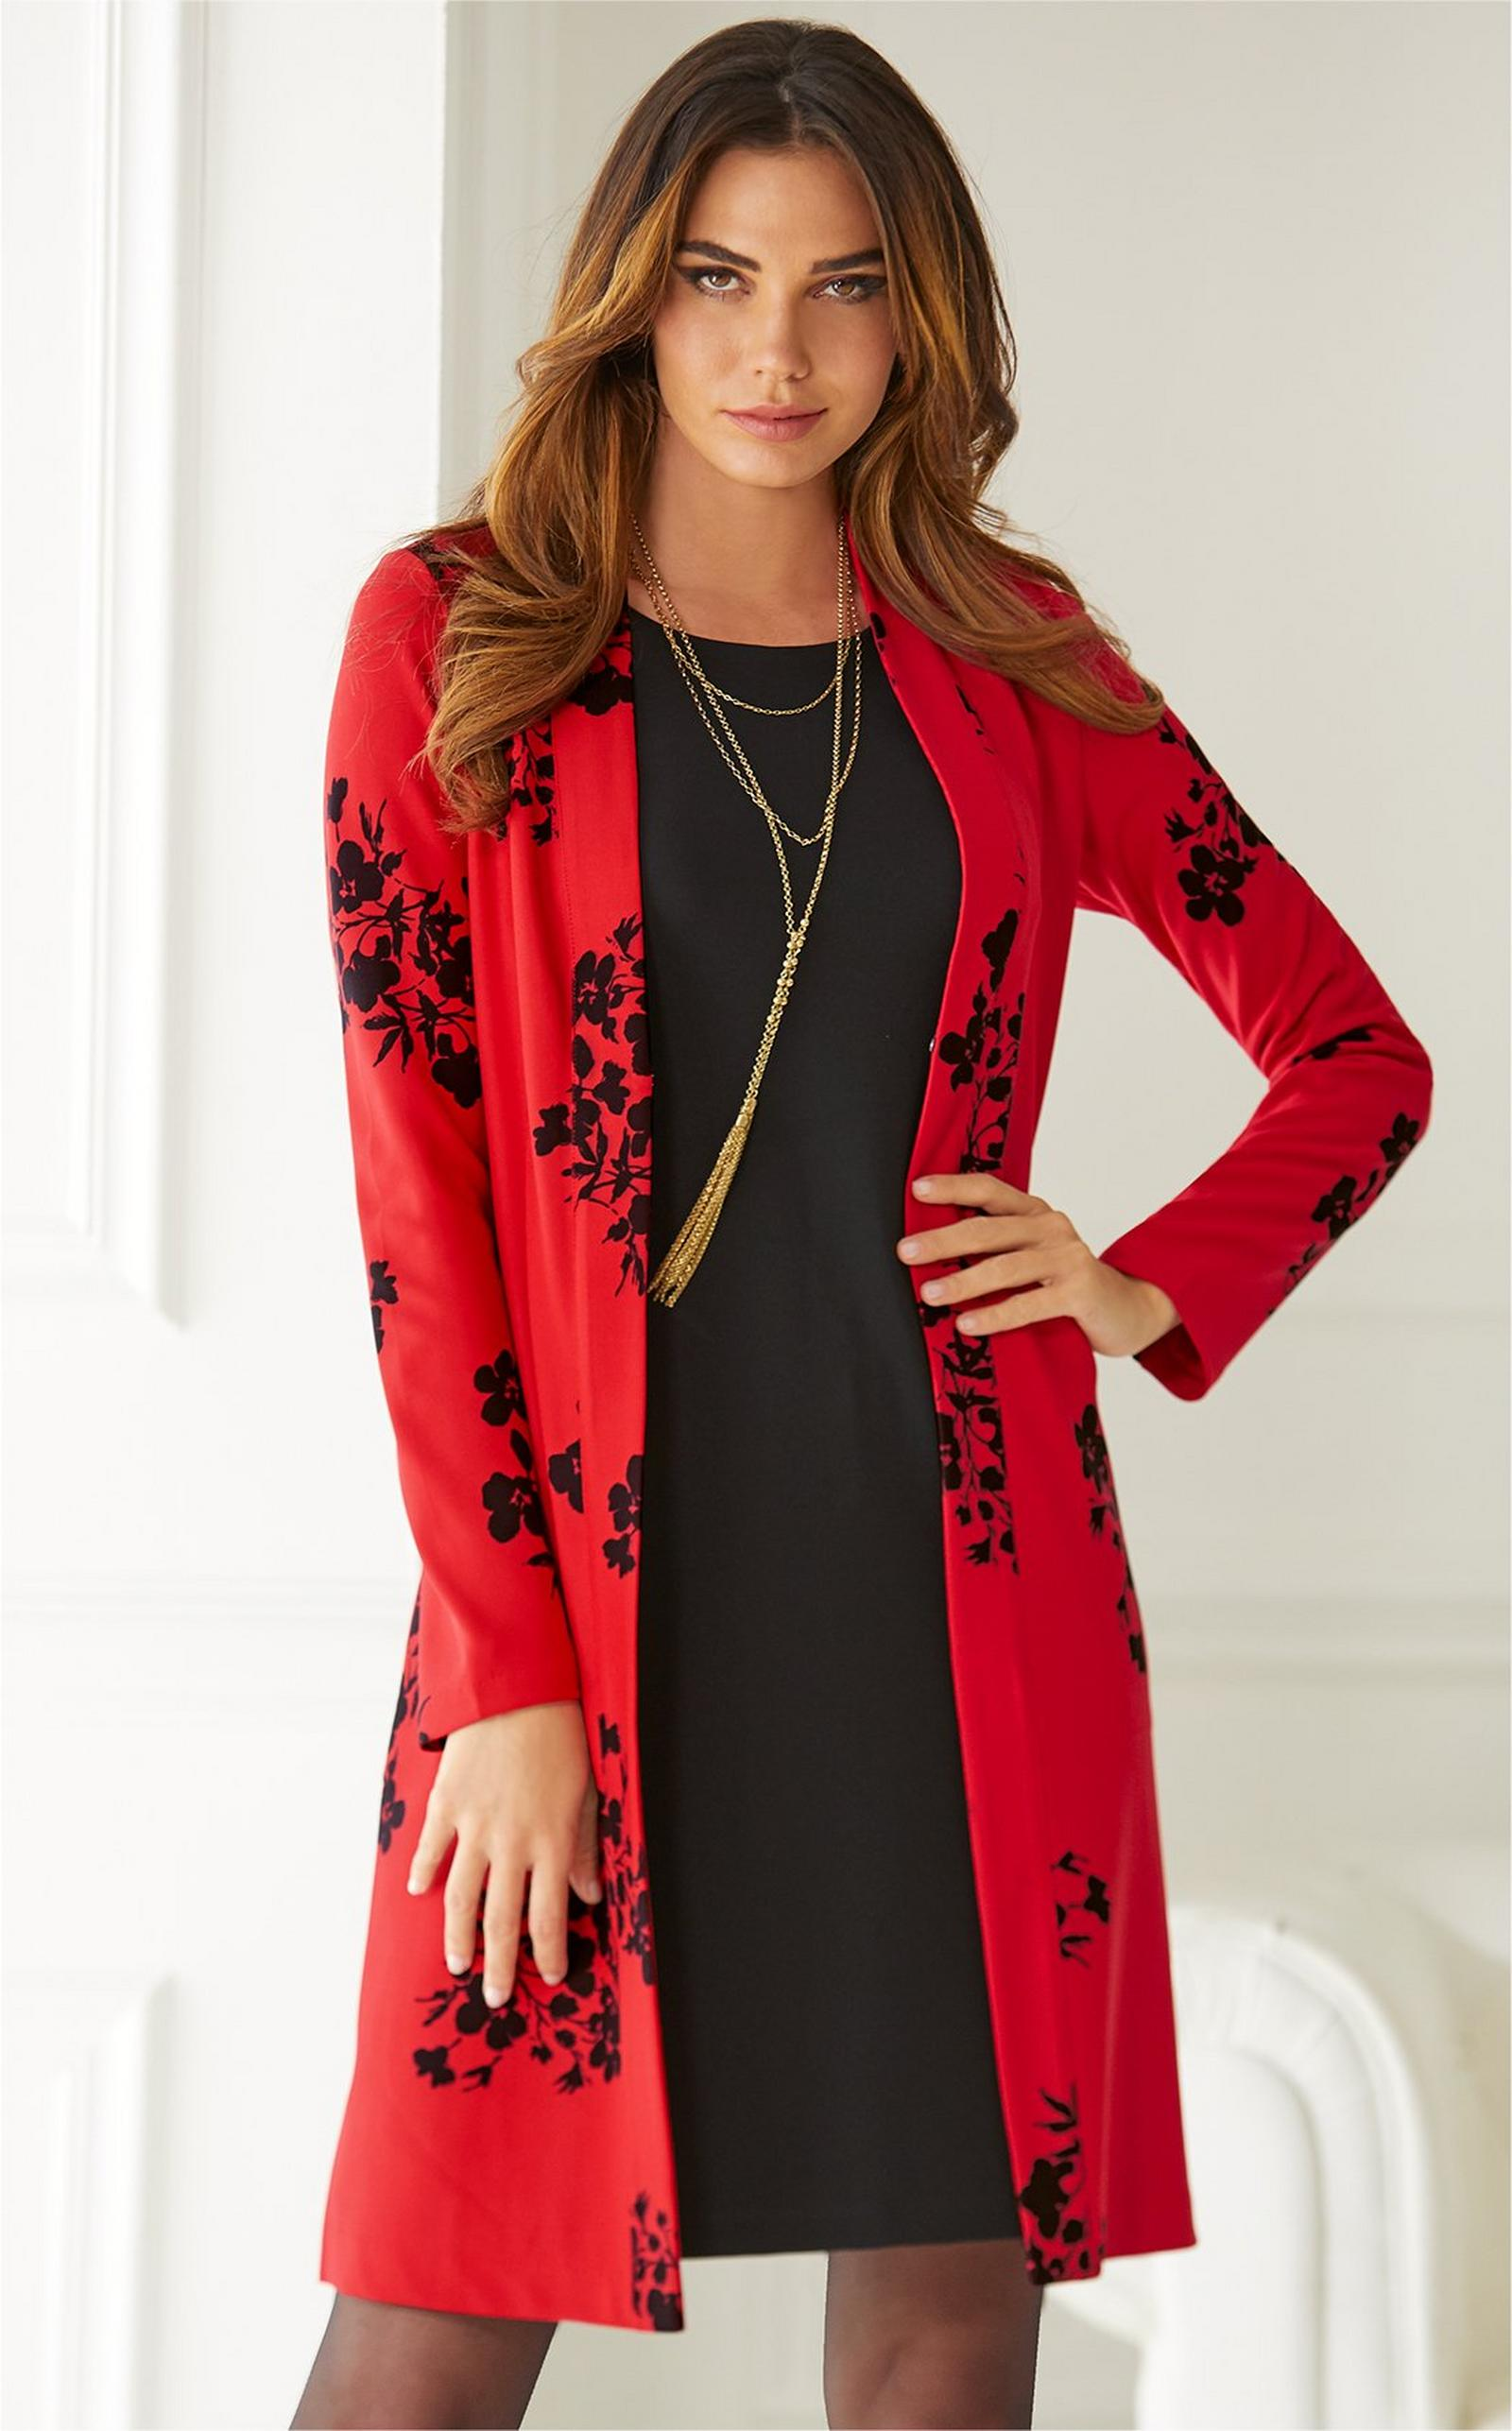 model wearing red floral cardigan over black trapeze dress and sheer black tights.